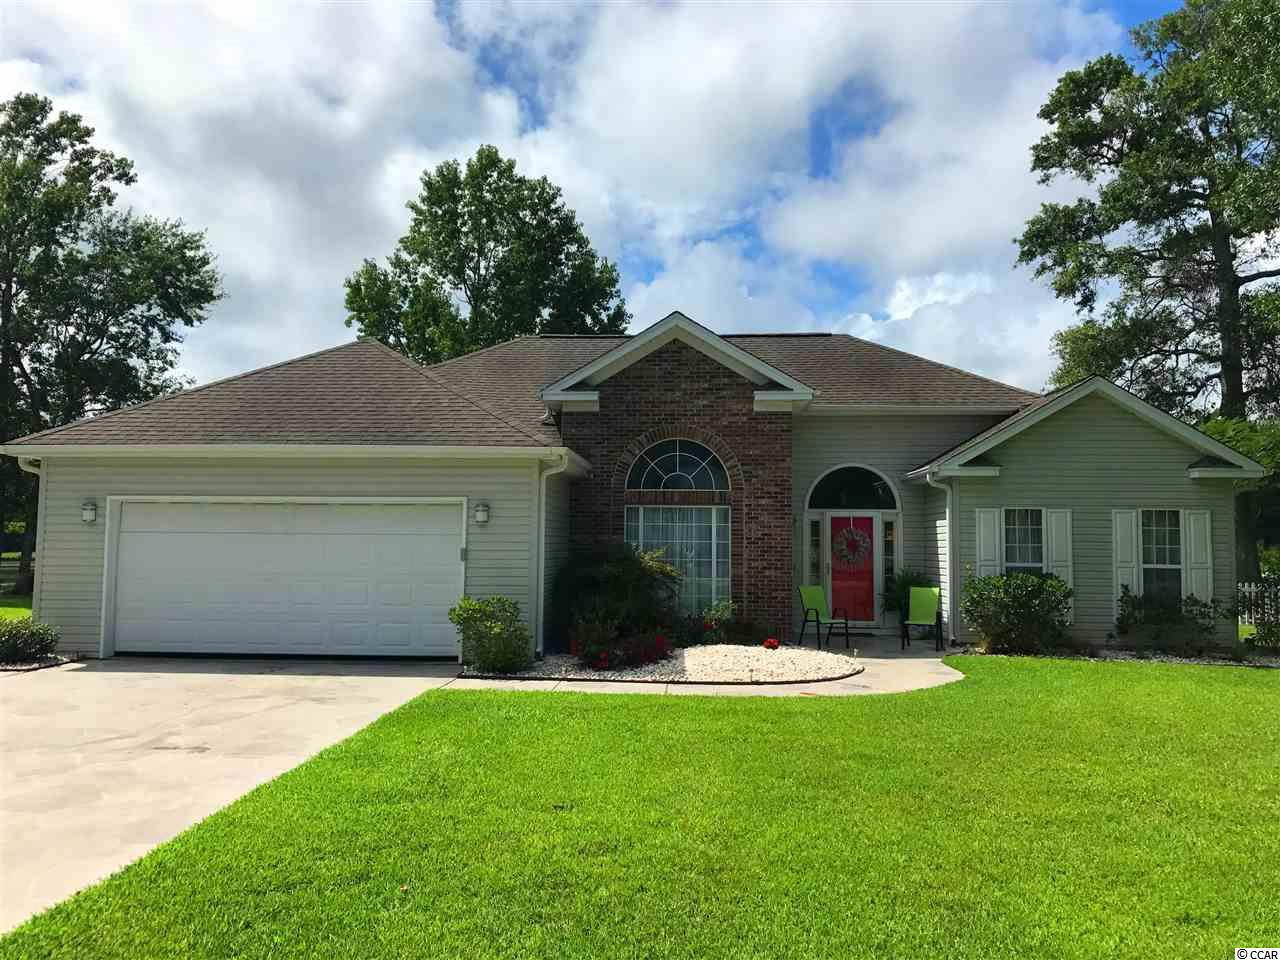 Mls 1717406 southwood surfside 1739 parsons way for Southwood house